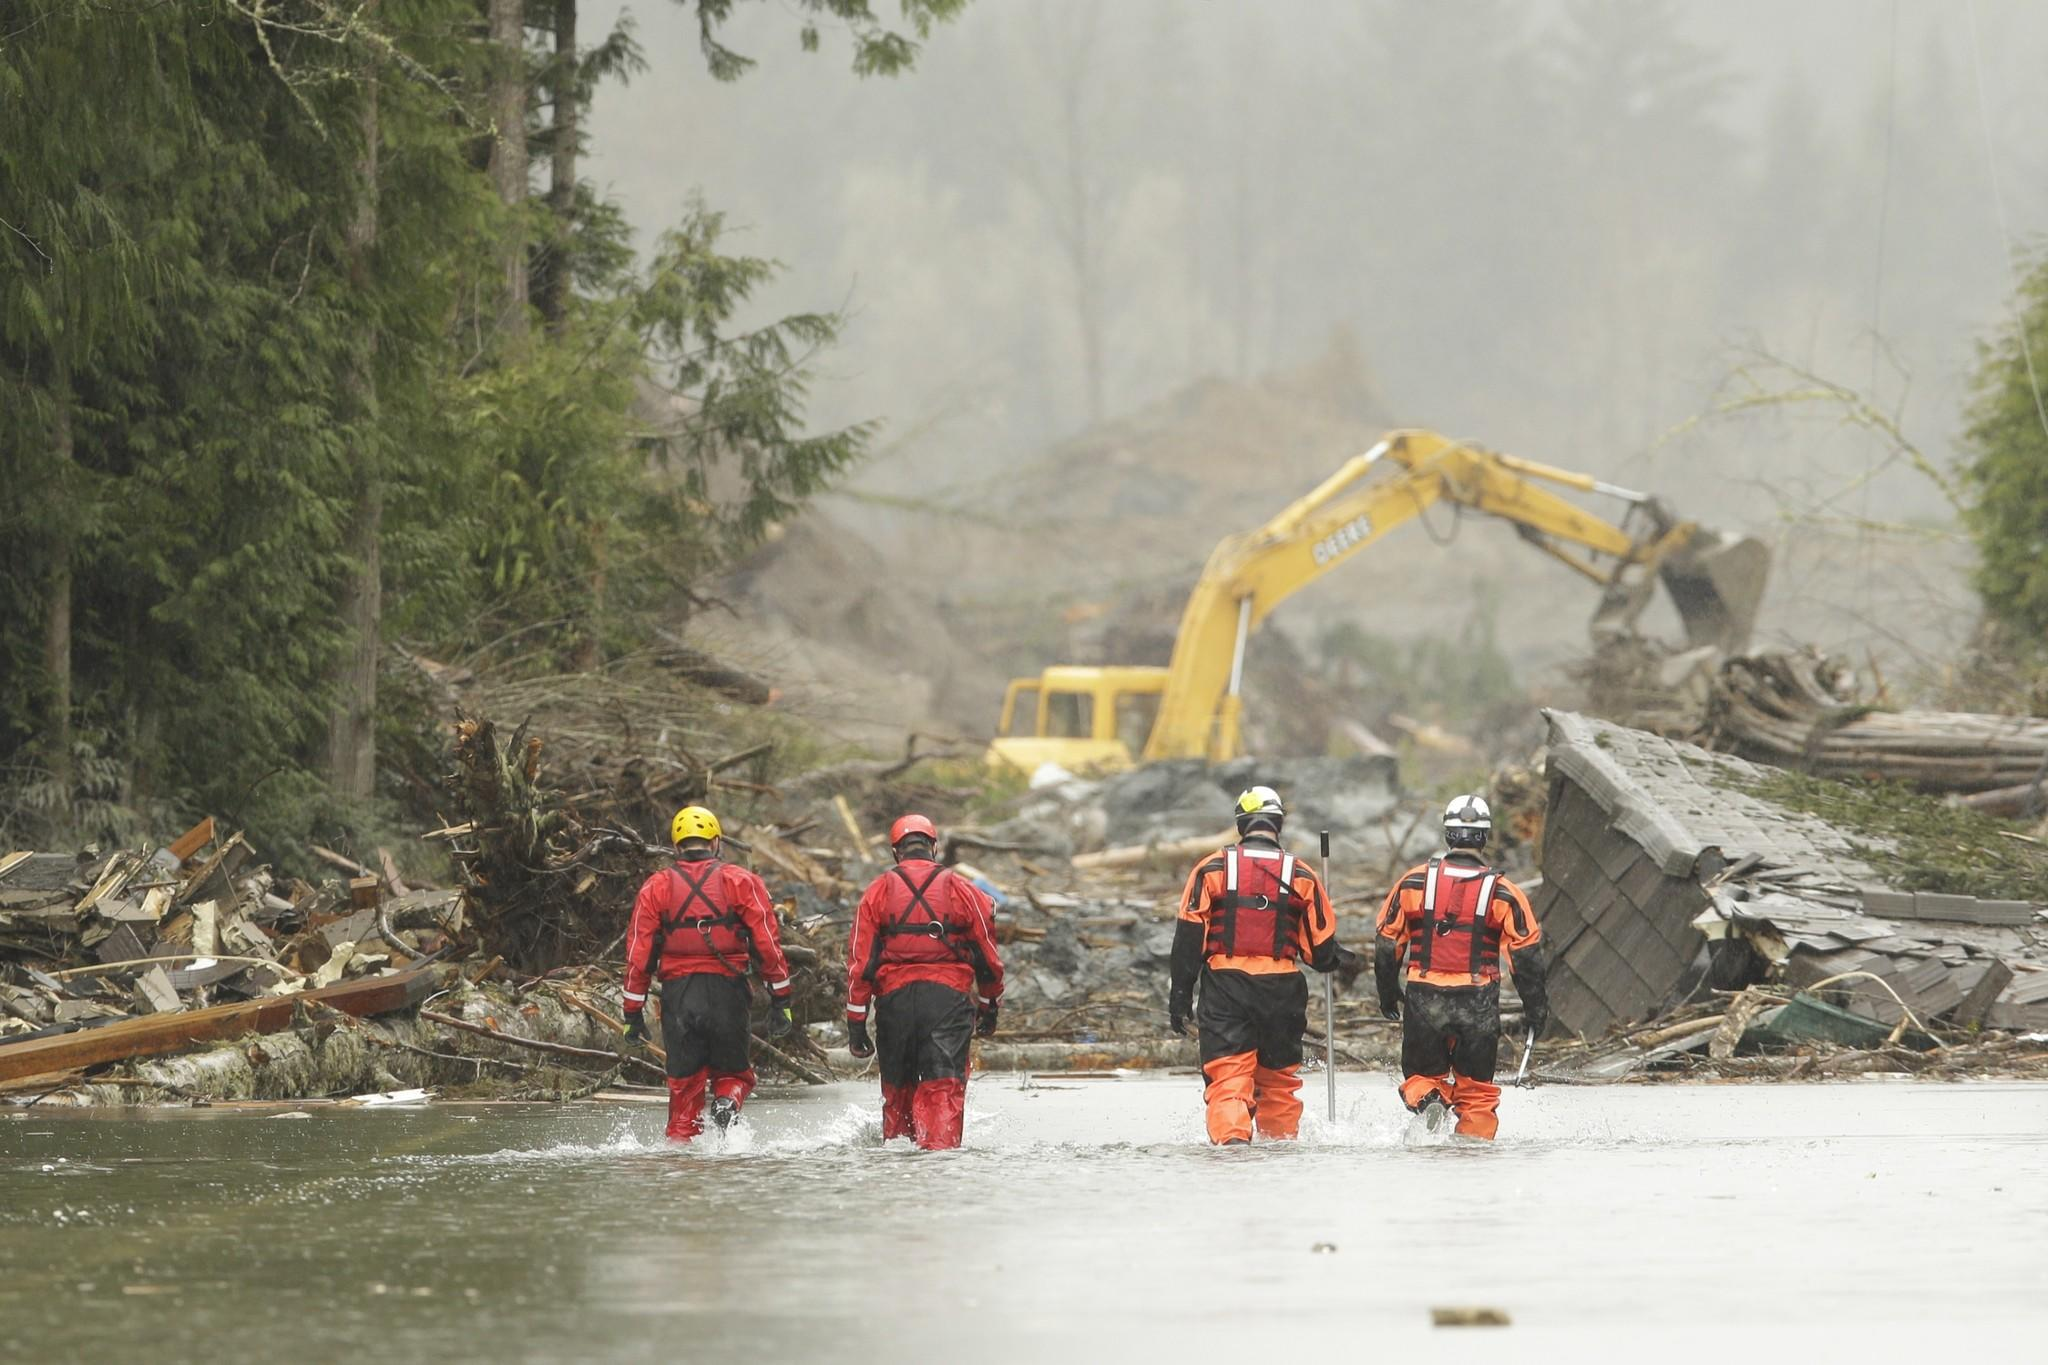 Mudslide search and rescue teams continue to work in Oso, Washington.